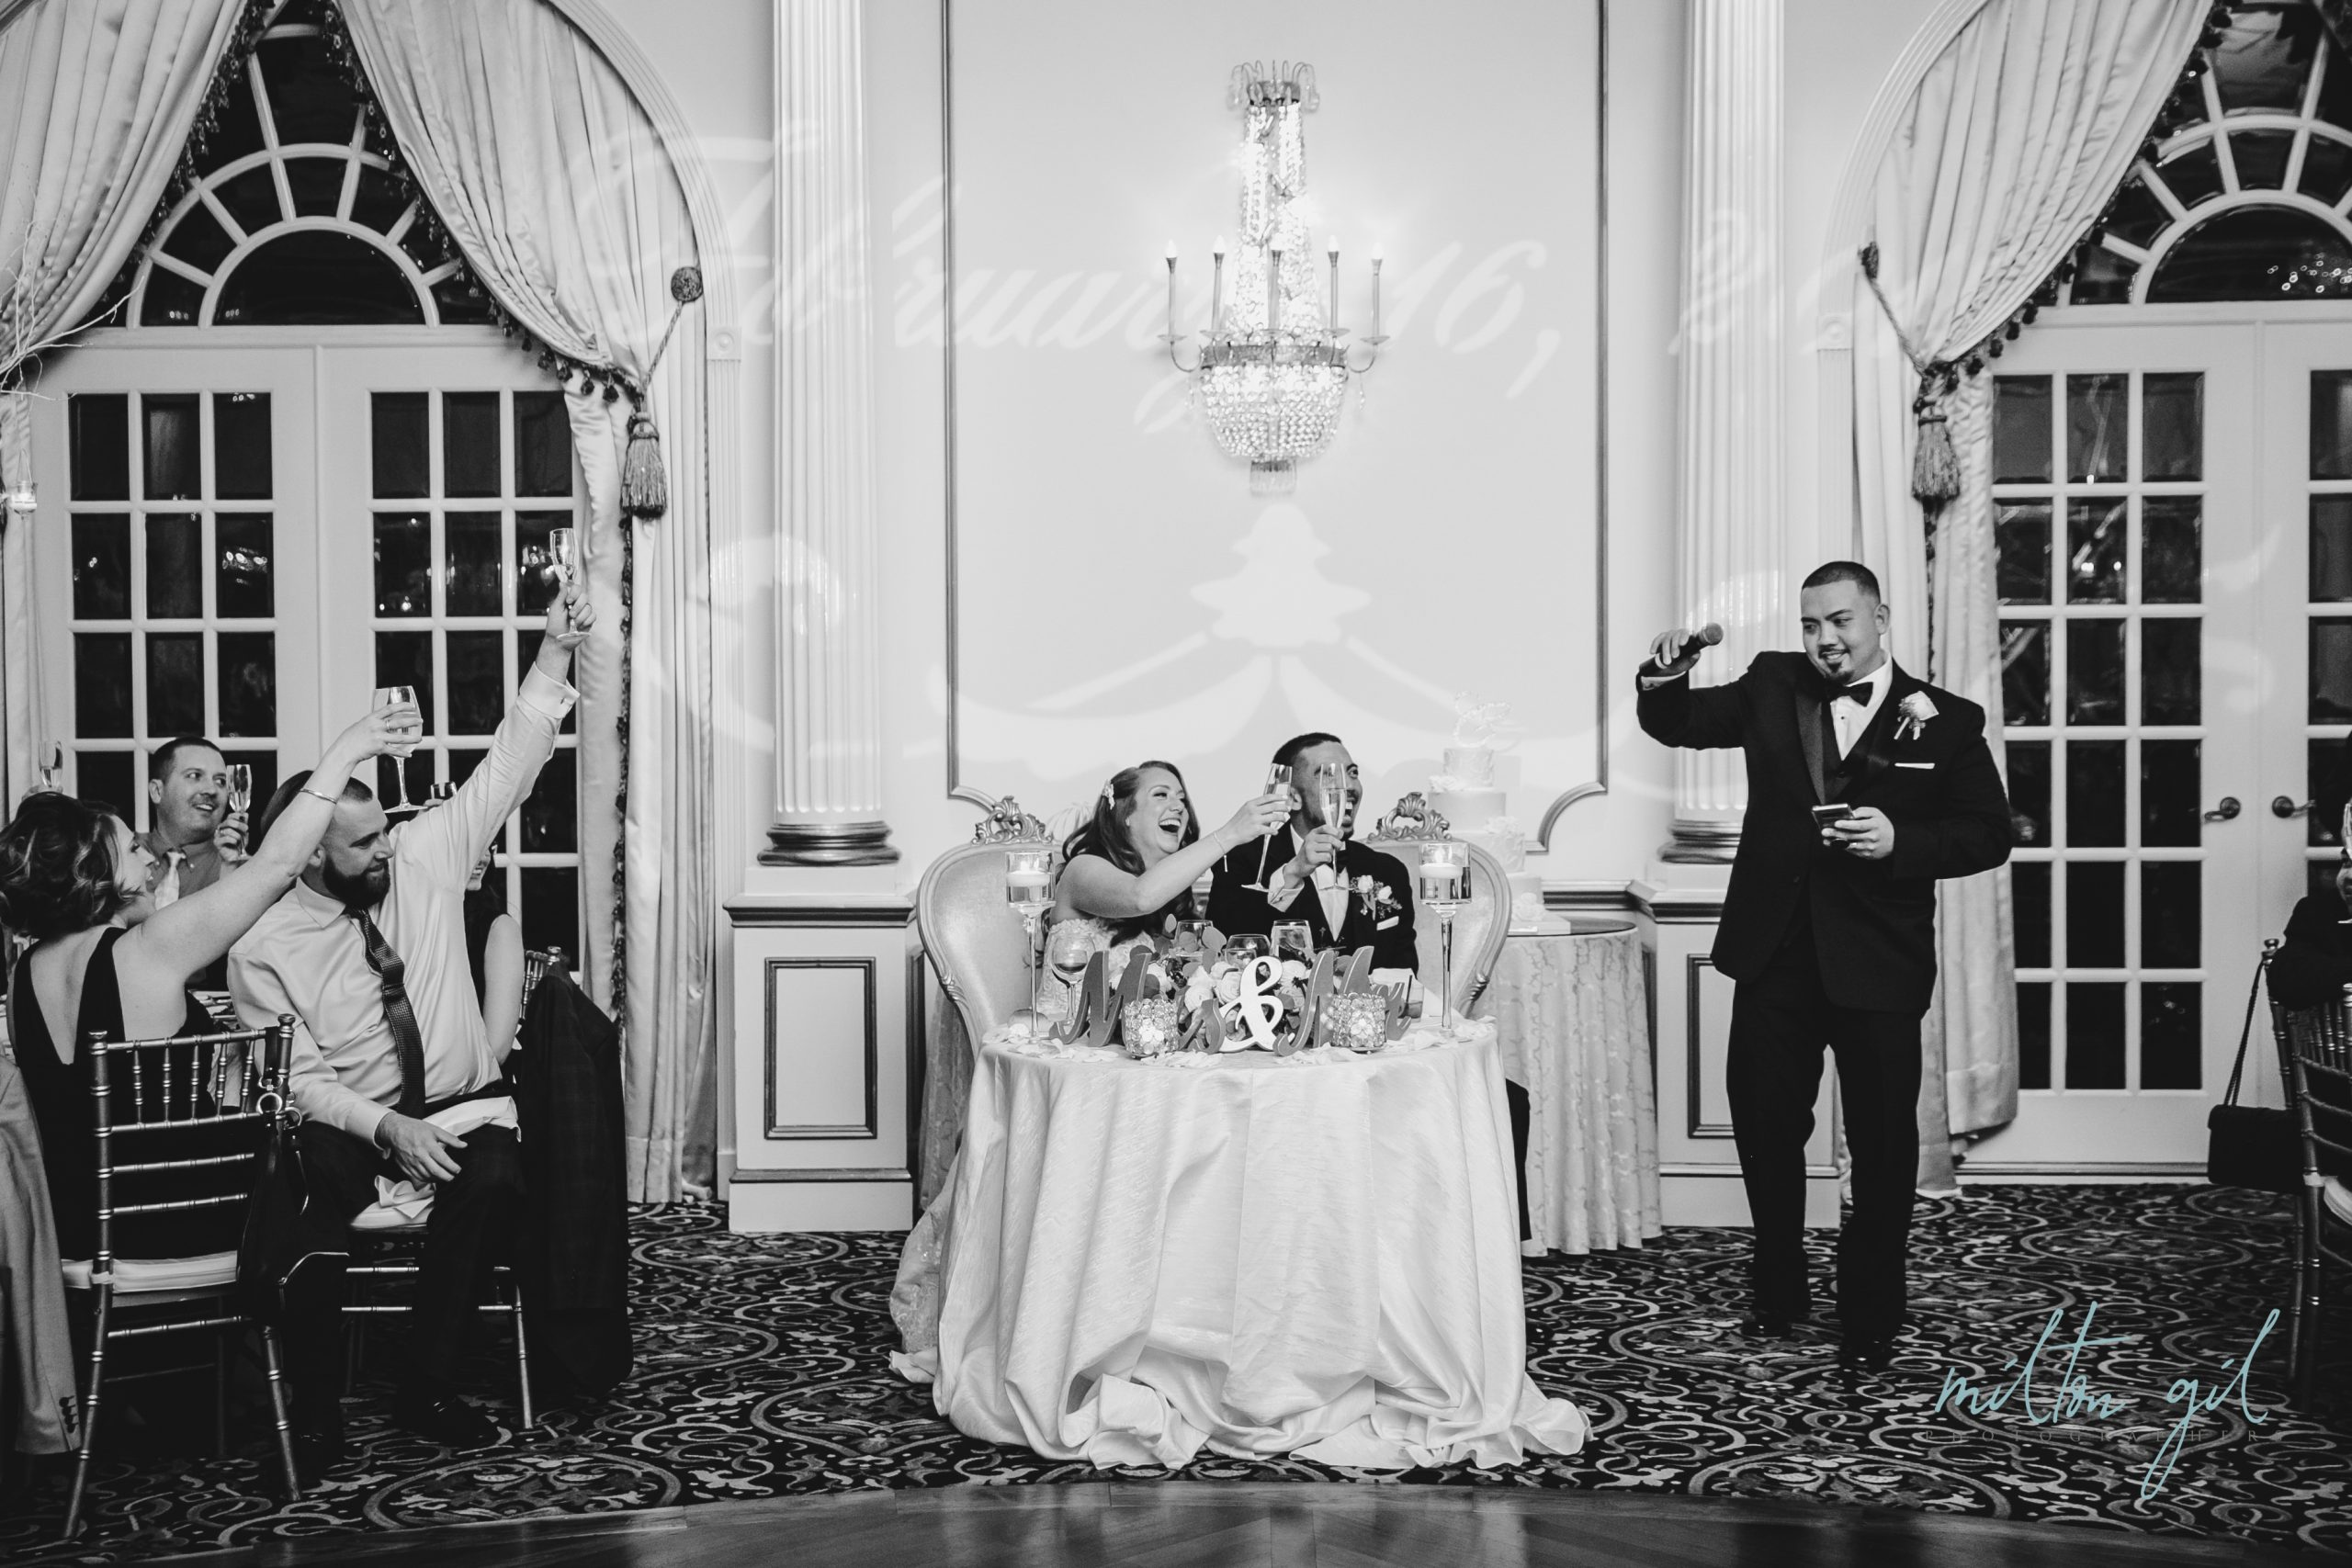 Best Man, Bride and Groom celebrating with guests at wedding in Livingston, New Jersey